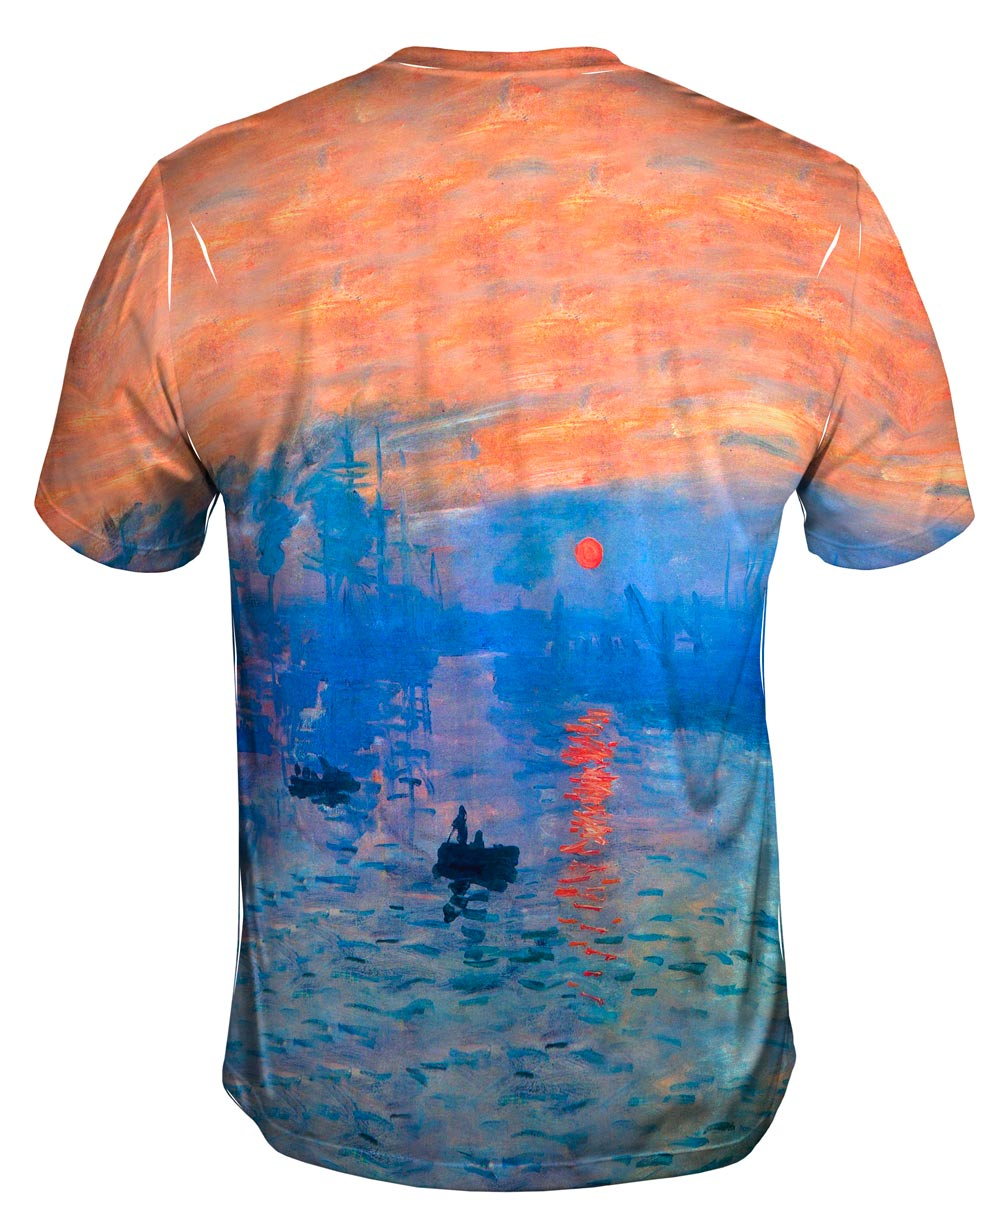 yizzam monet impression sunrise new men unisex tee shirt. Black Bedroom Furniture Sets. Home Design Ideas